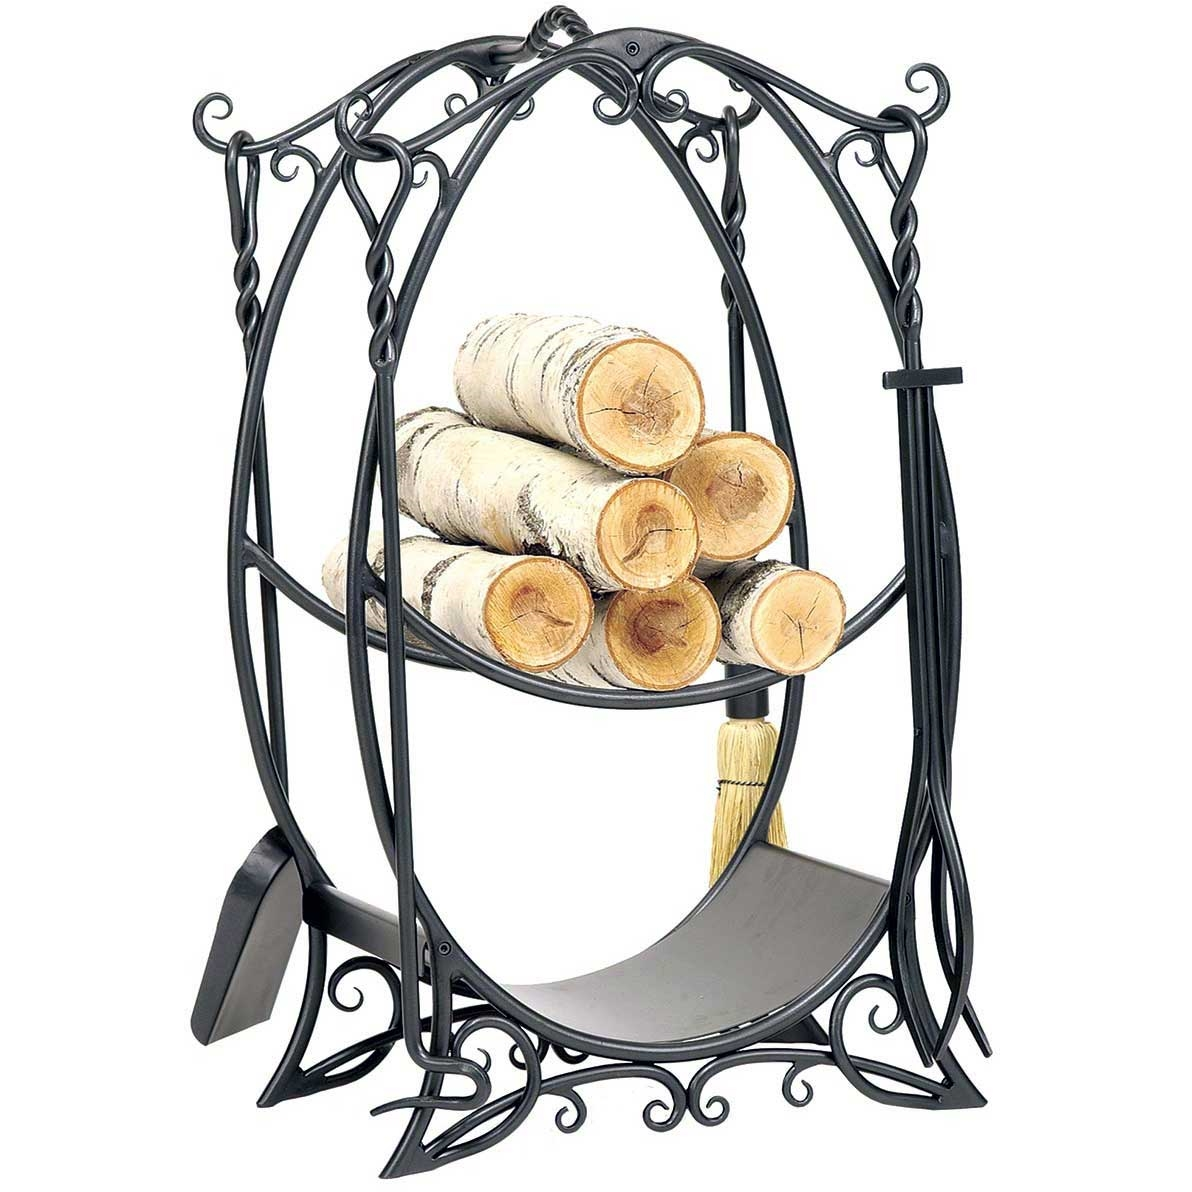 This 4 Tool Cottage Fireplace Tool Set and Wood Holder displays quality craftsmanship for lasting durability. Shop hearth accessories from Timeless Wrought Iron.